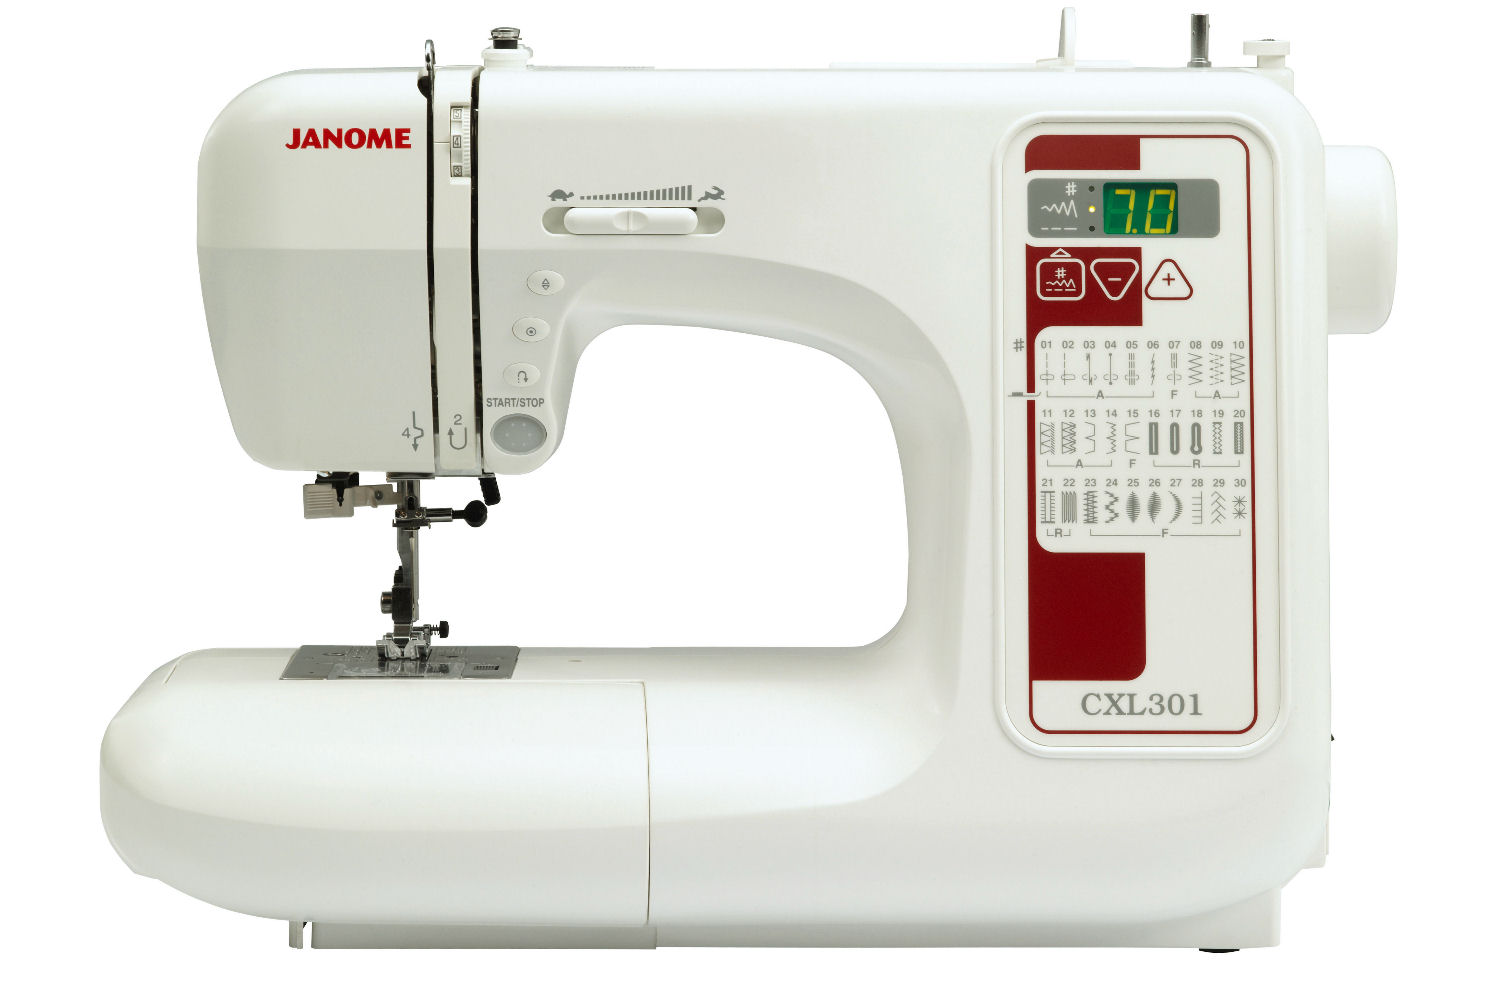 The Janome CXL301 - We have 4 of these available for student use.